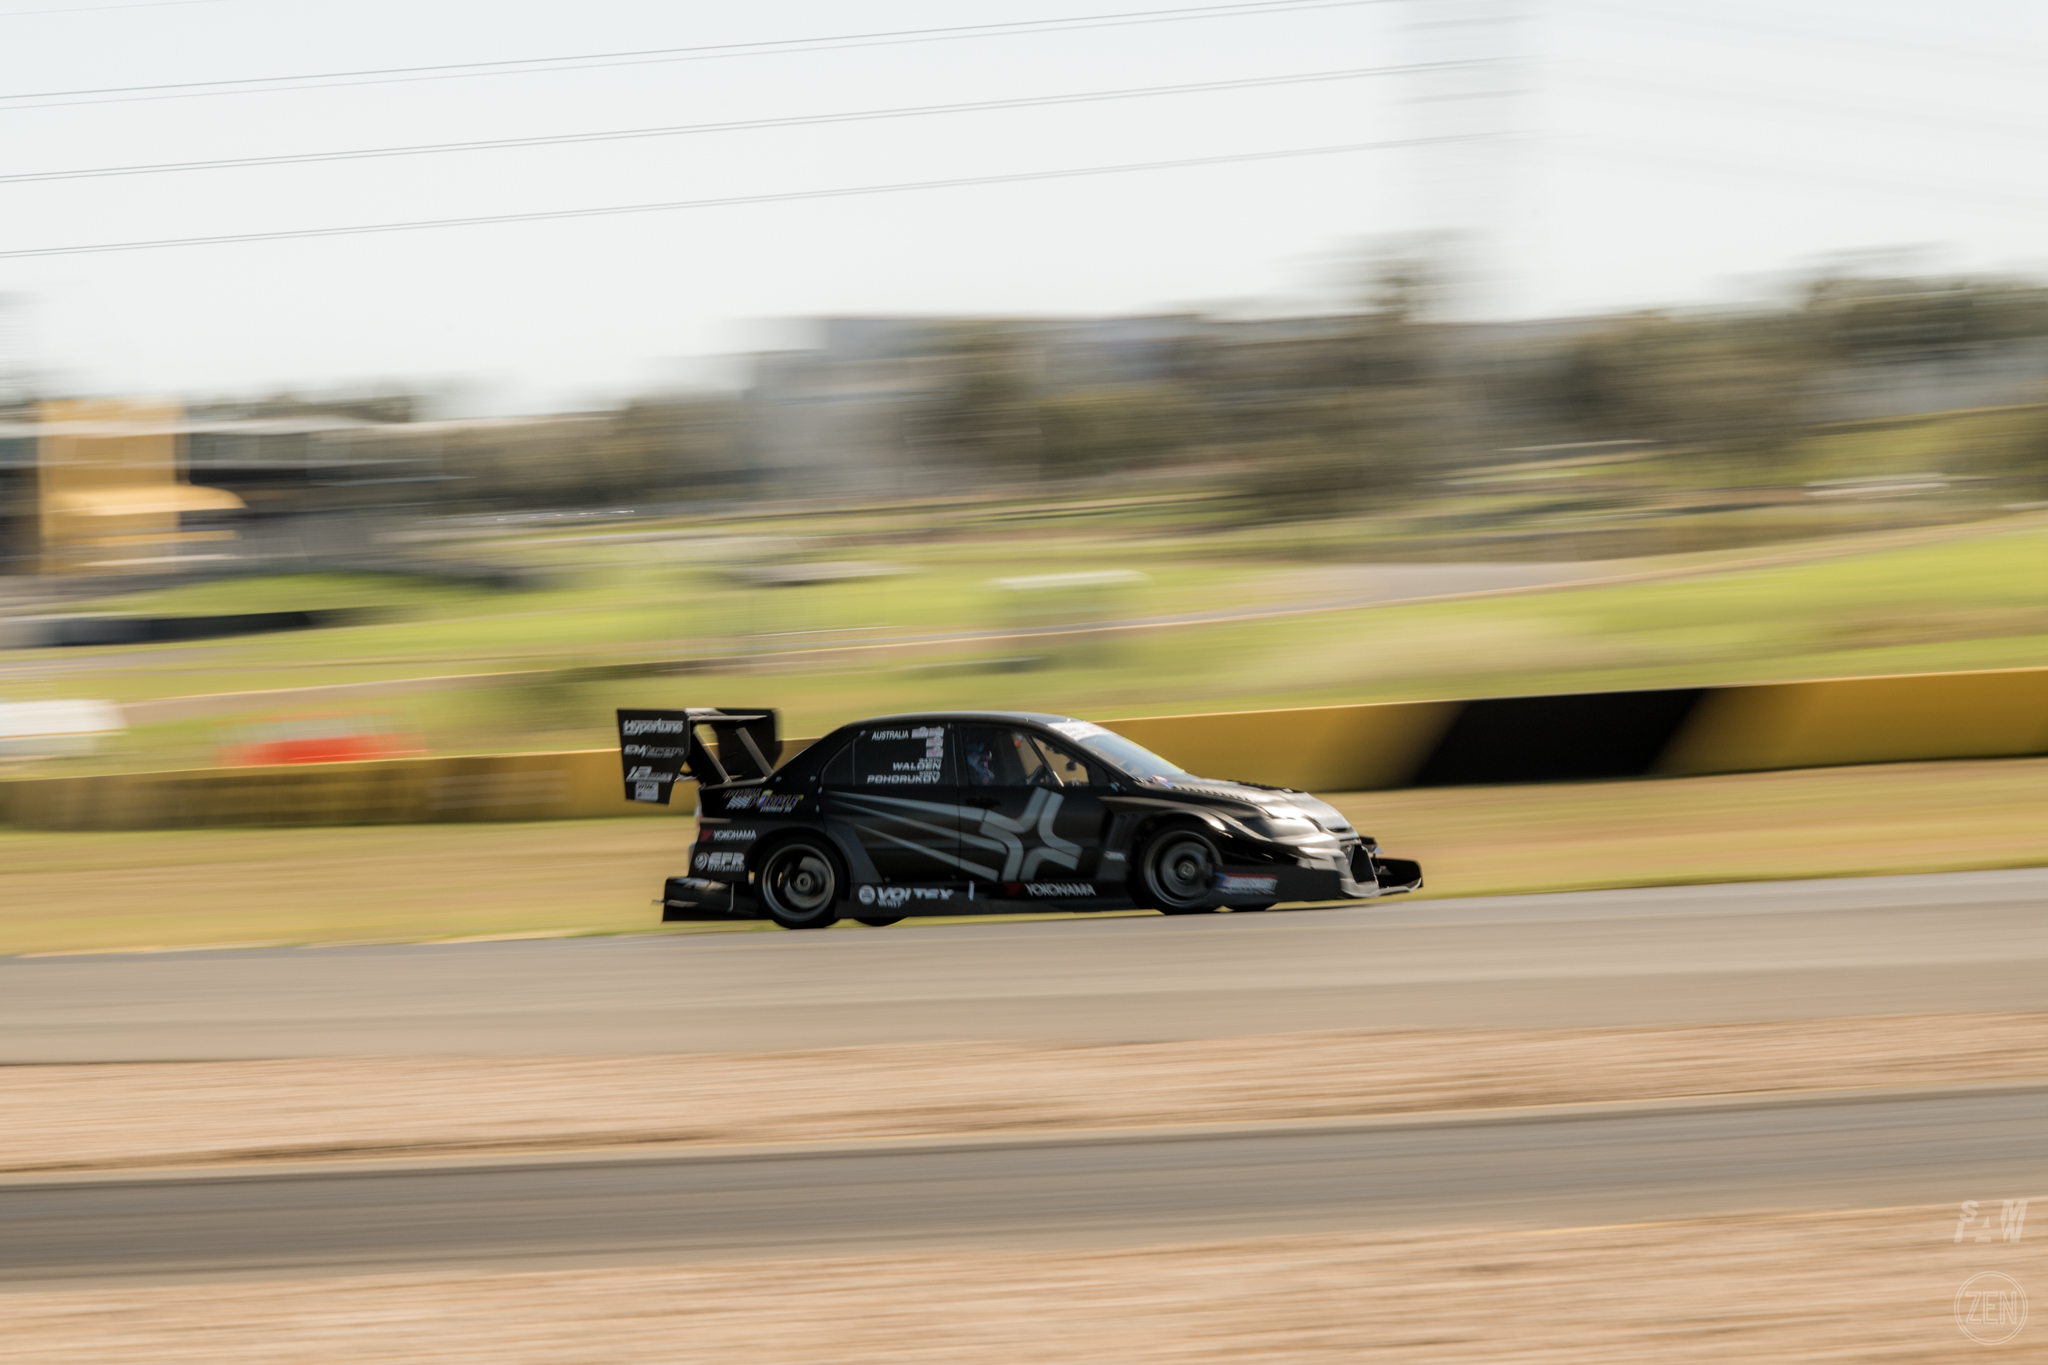 2019-10-19 - WTAC Day 2 004